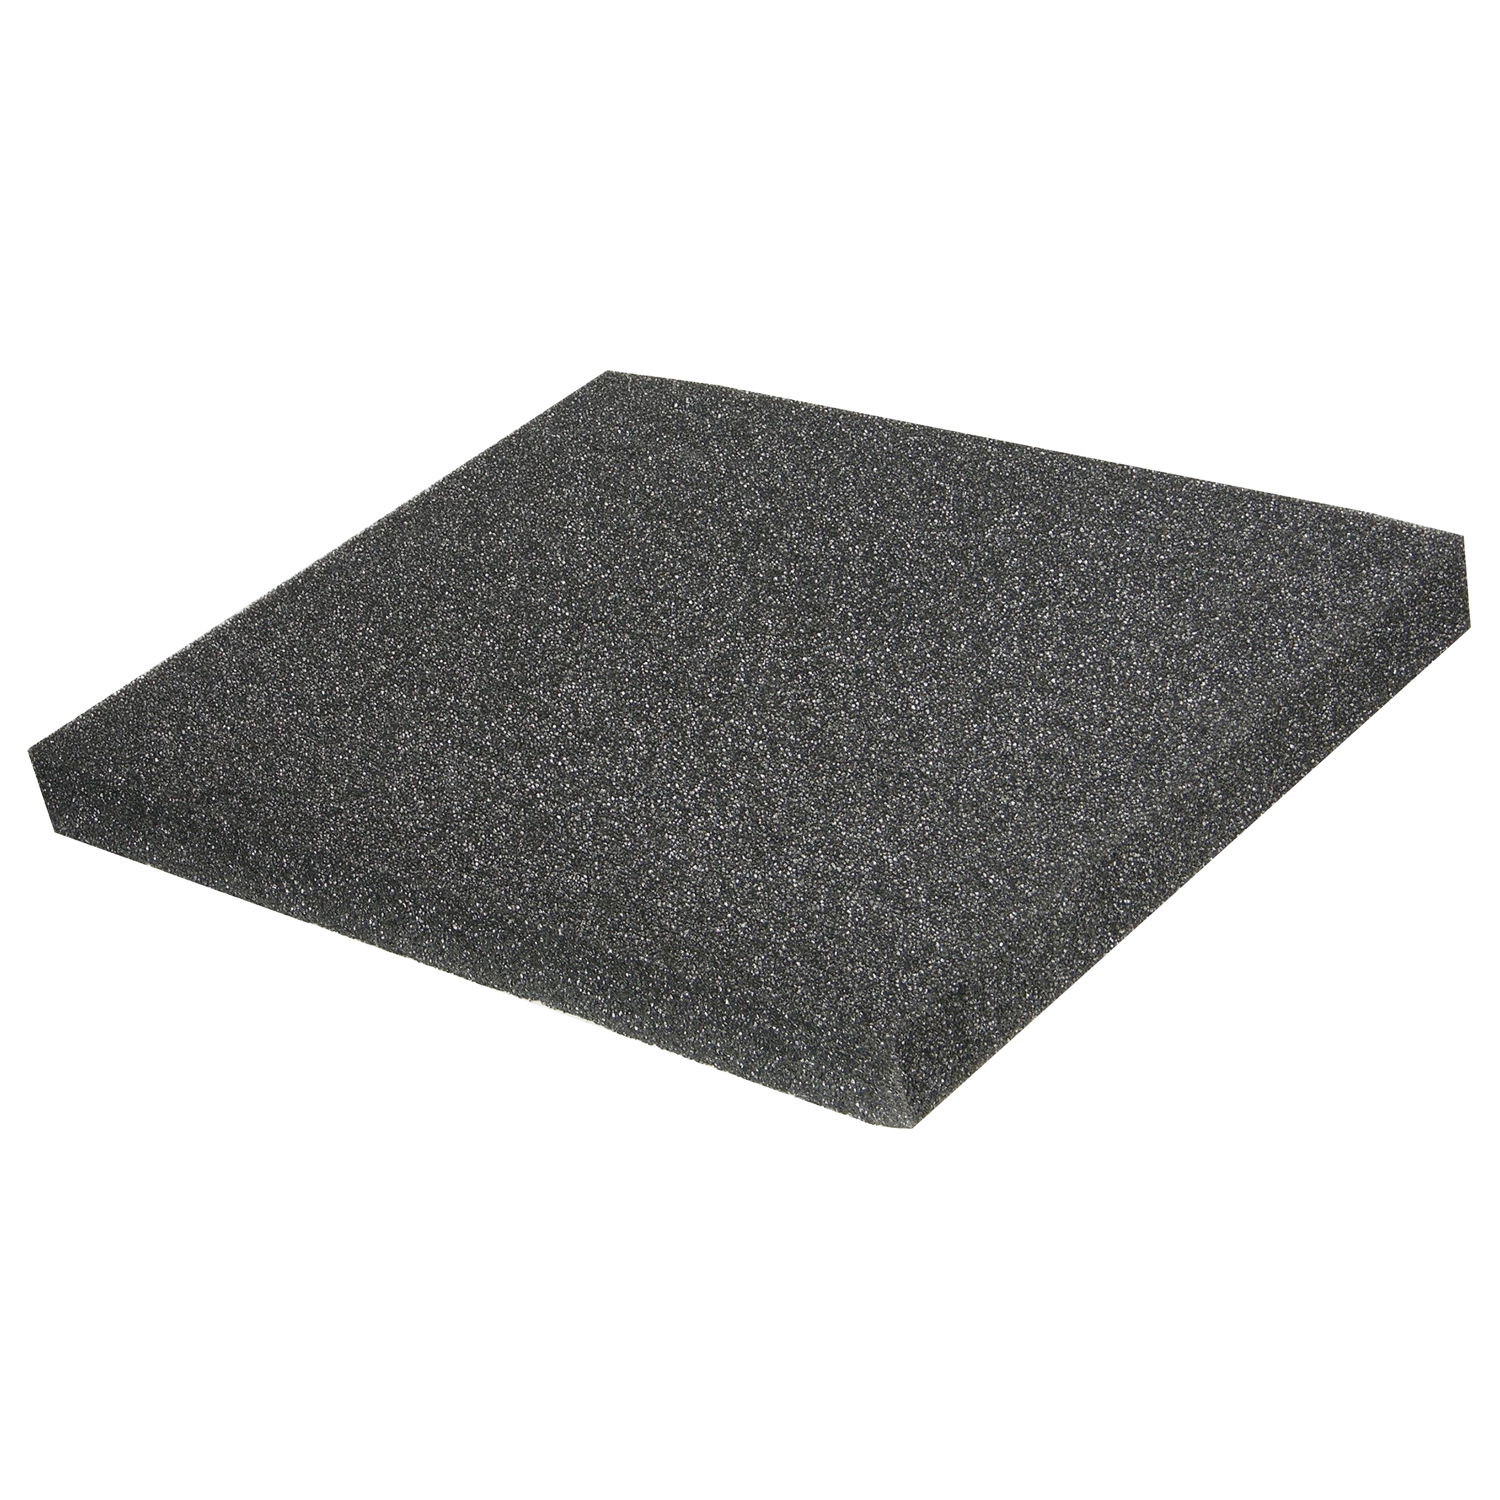 1U Thick Foam Sheet